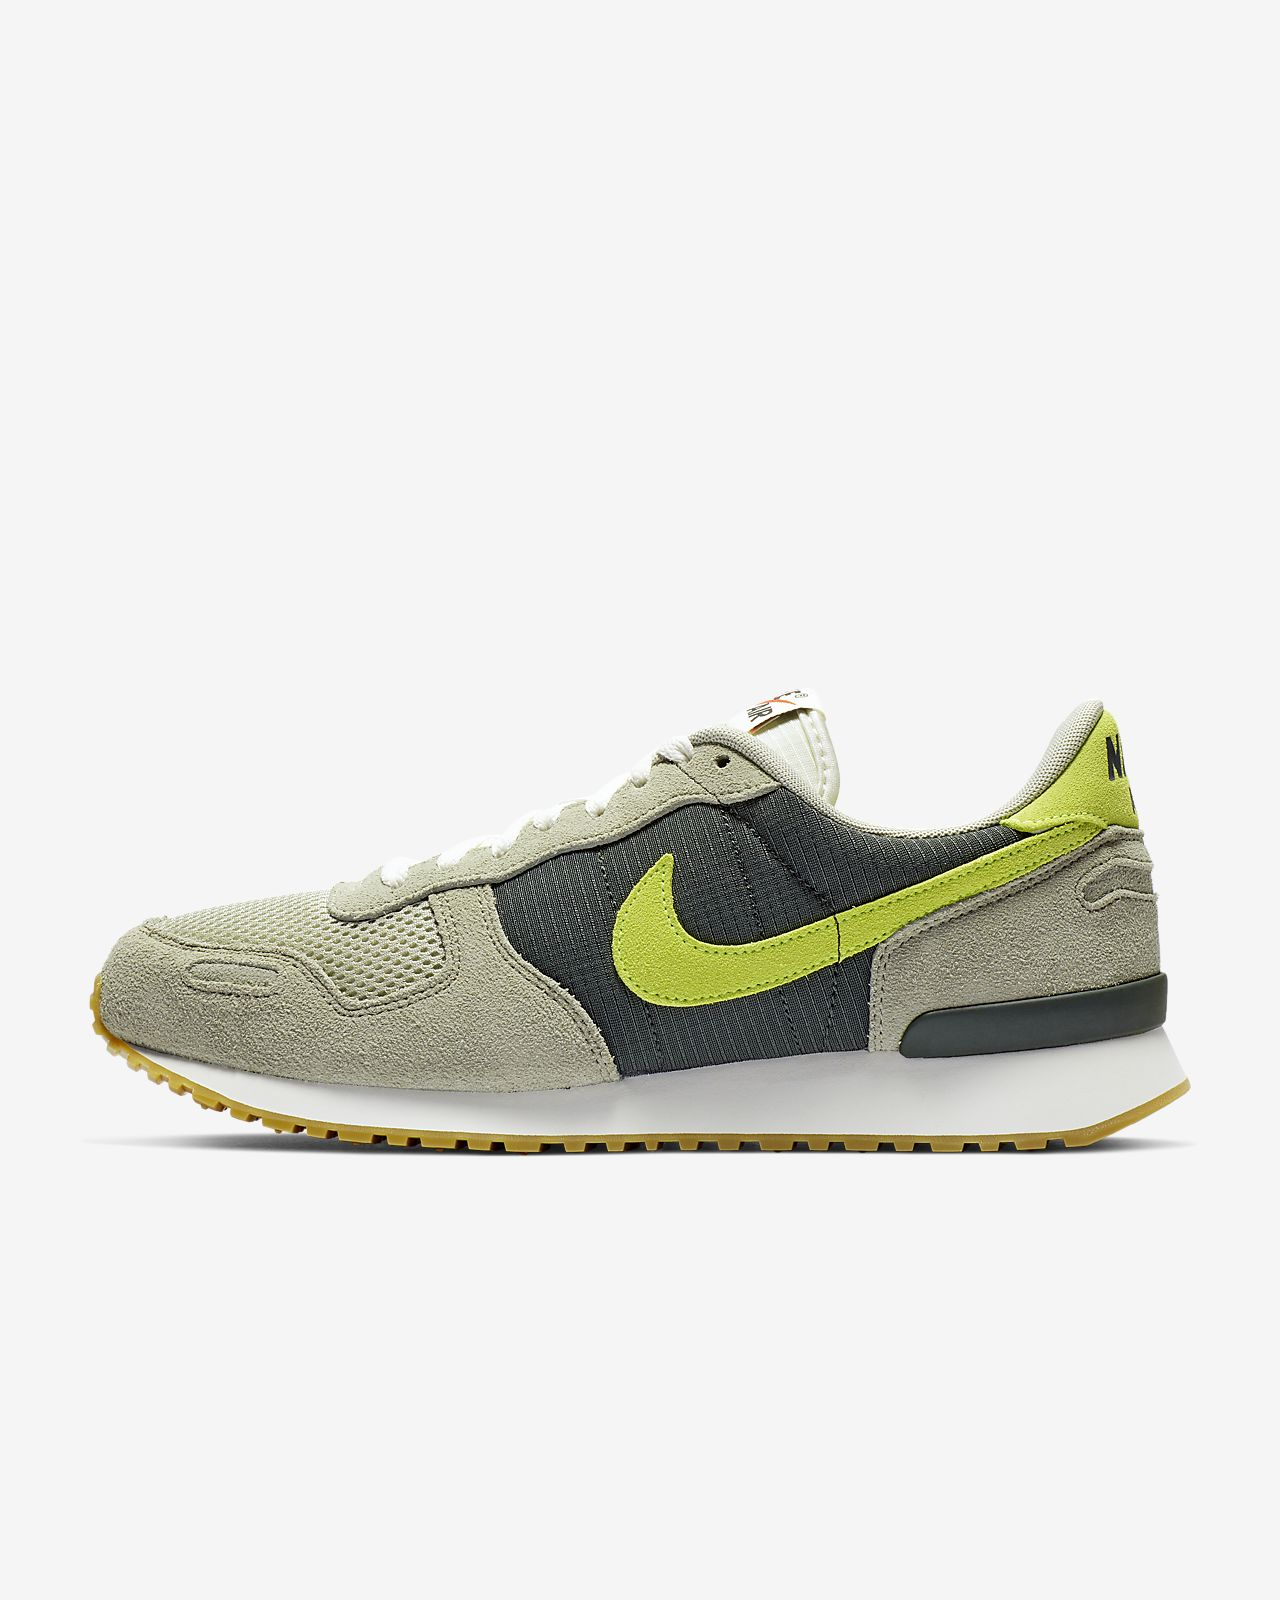 new product ba5db 00930 Air Vortex Hombre Nike Es Zapatillas XqgwxTpU